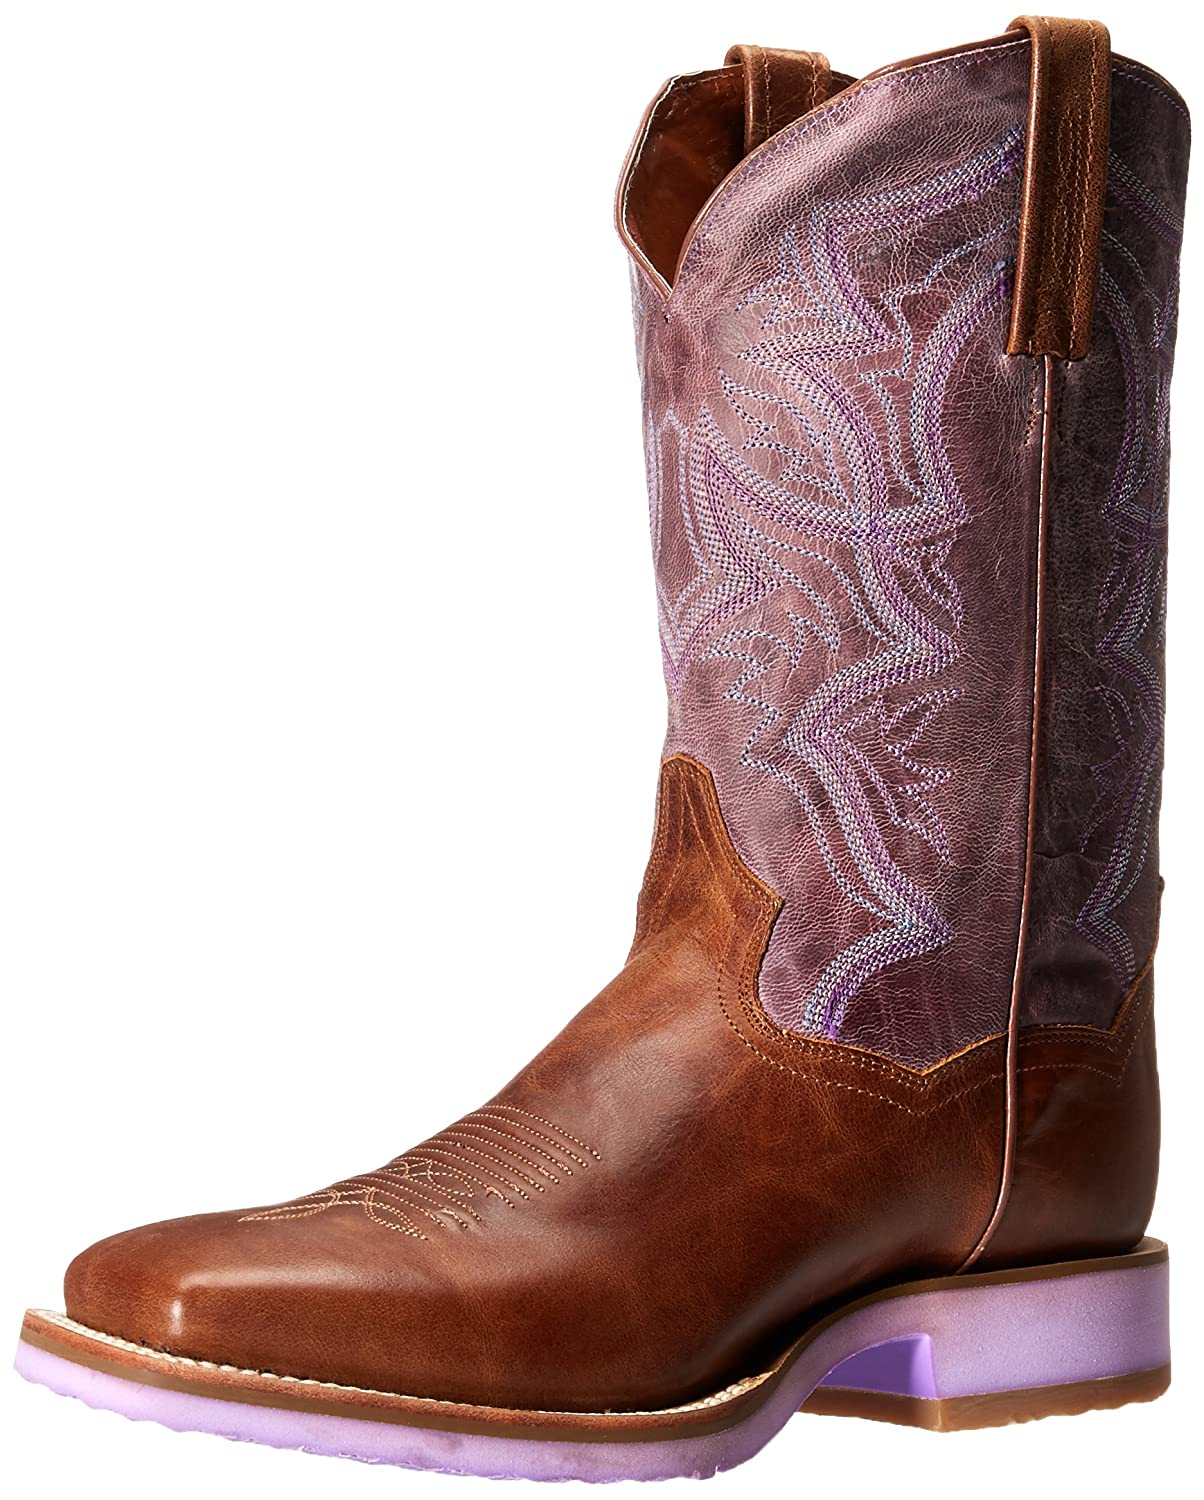 Dan Post Women's Serrano Western Boot B00QSQBODC 7 B(M) US|Tan/Purple